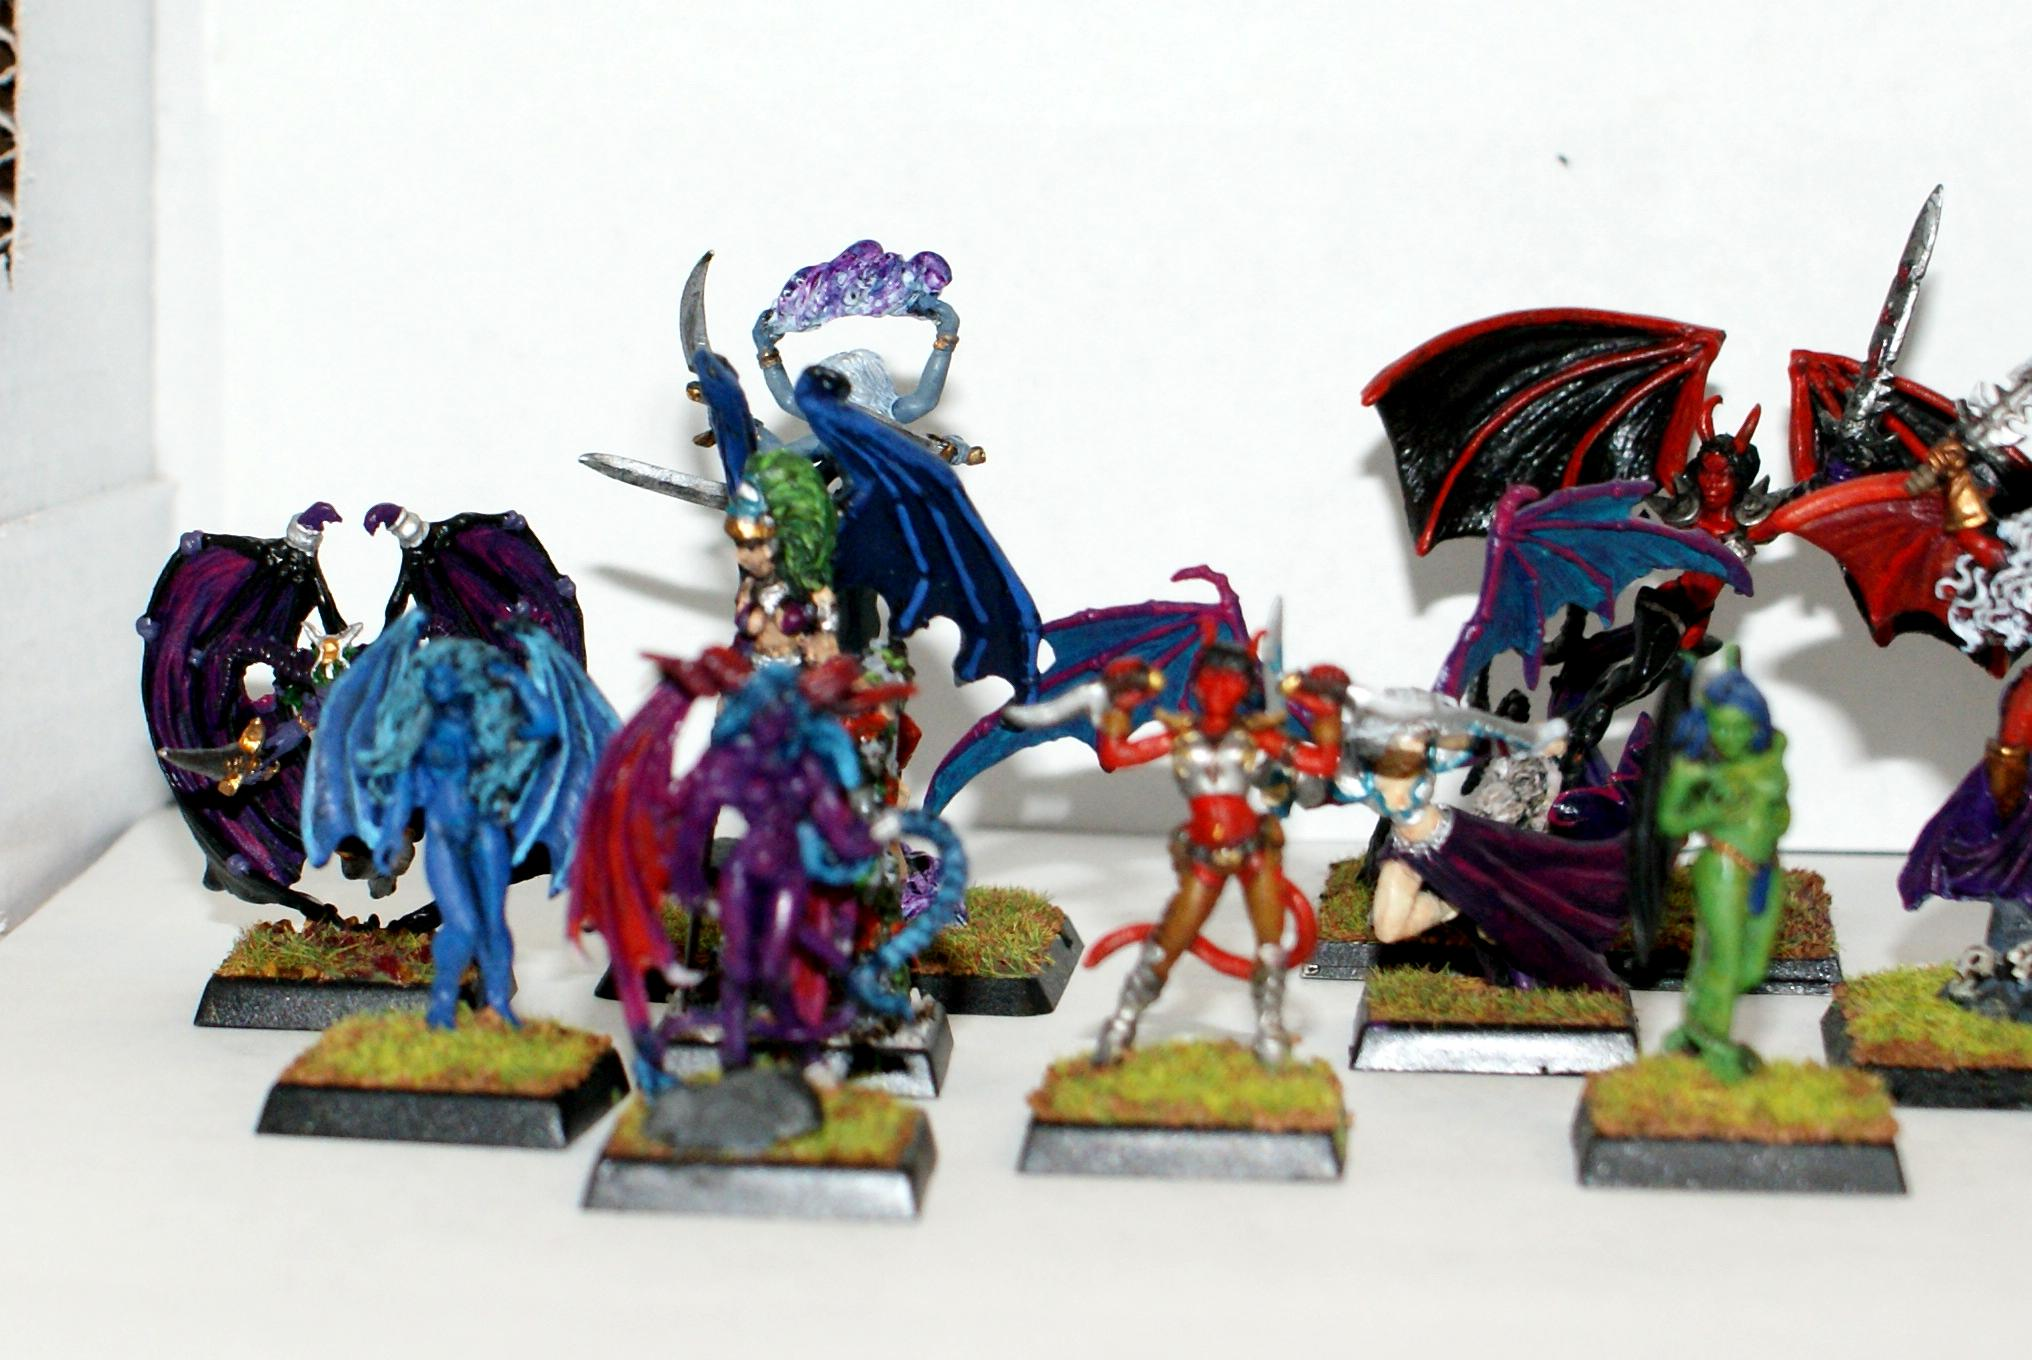 Female, Nude, Reaper, Succubus, Warlords